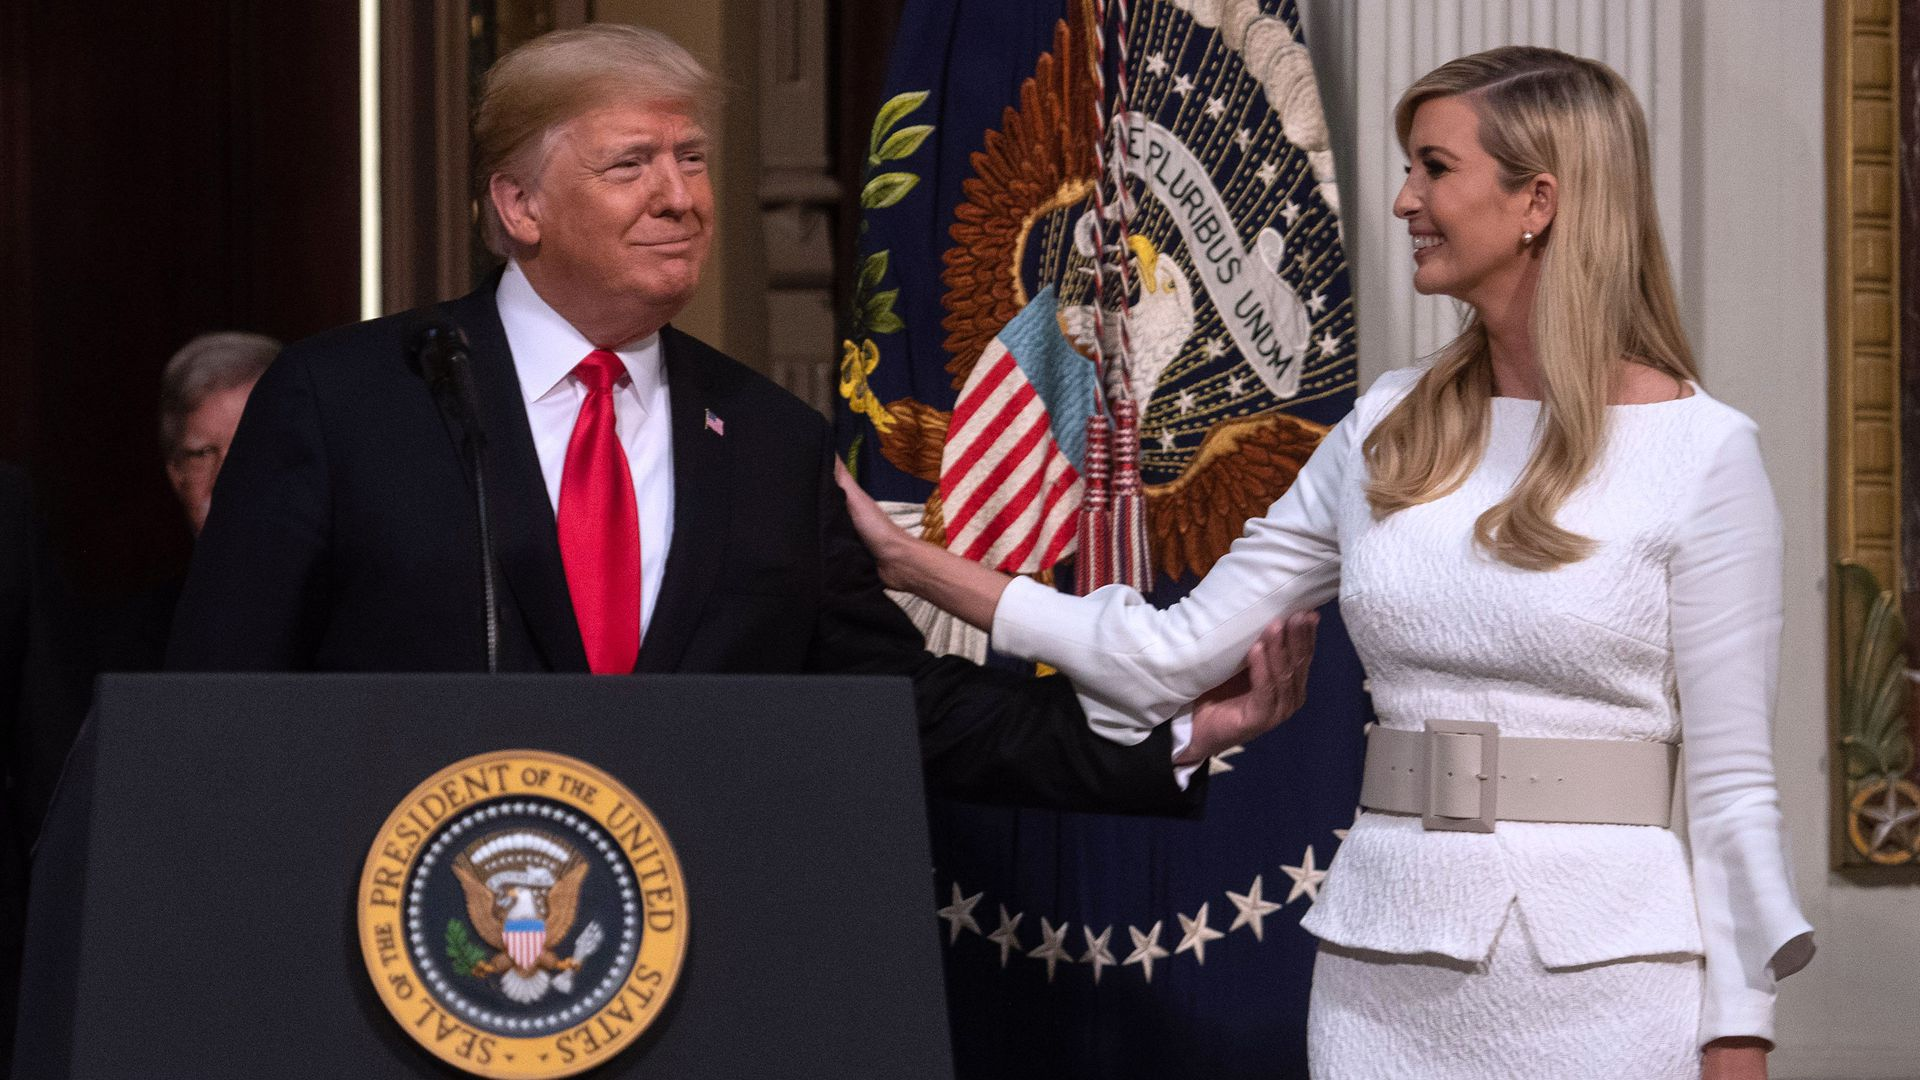 In this image, Ivanka stands next to Trump as he stands behind a podium. She smiles at him and places a hand on his shoulder.